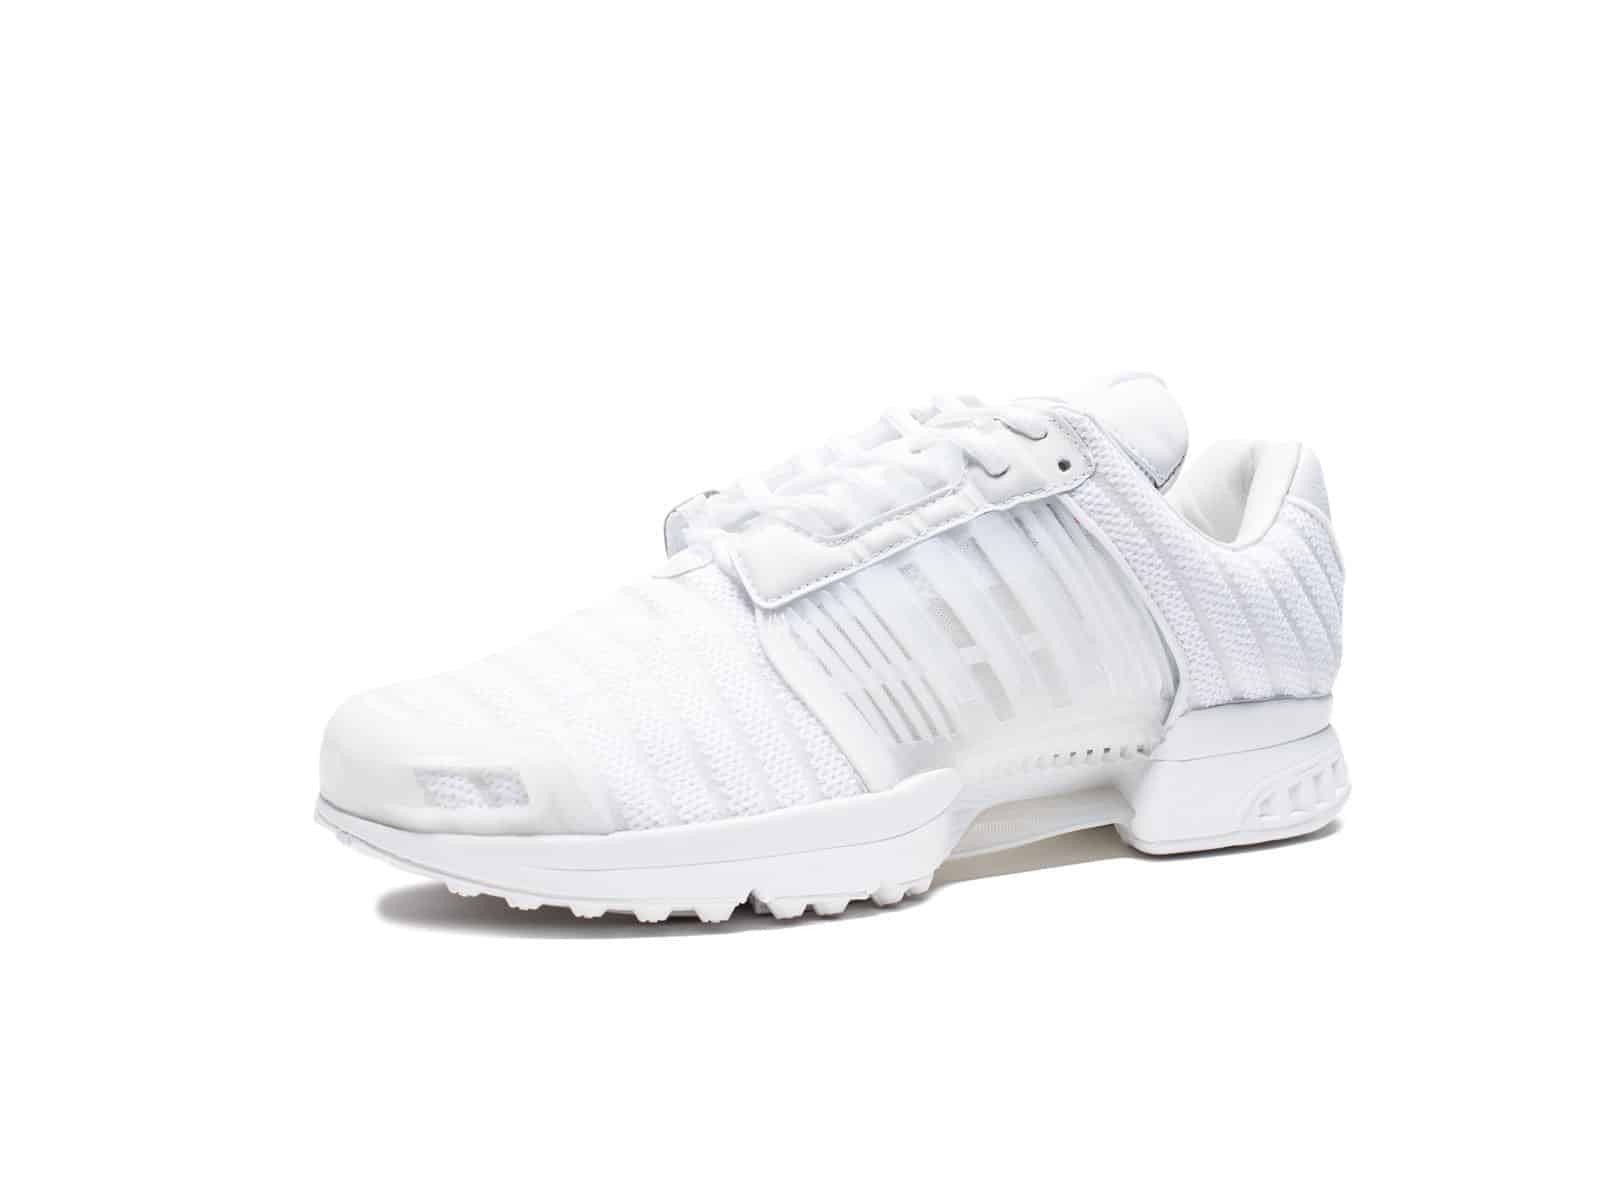 new concept b52b9 bbd41 SNEAKERBOY X WISH CLIMACOOL 1 PK - WHITE | Undefeated